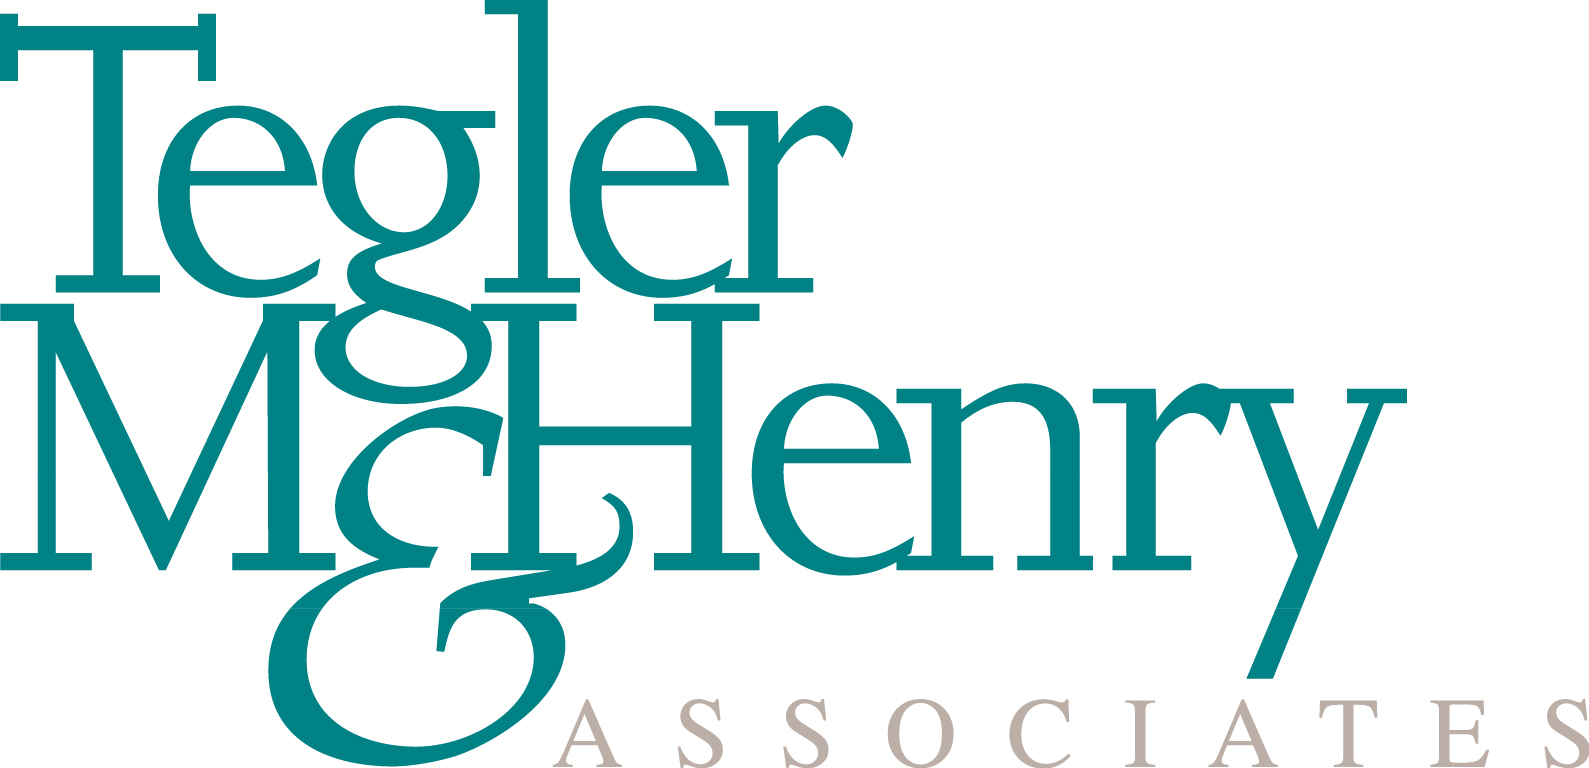 Tegler McHenry & Associates, Inc. - The employee benefits broker and group health insurance advisor in West Chester